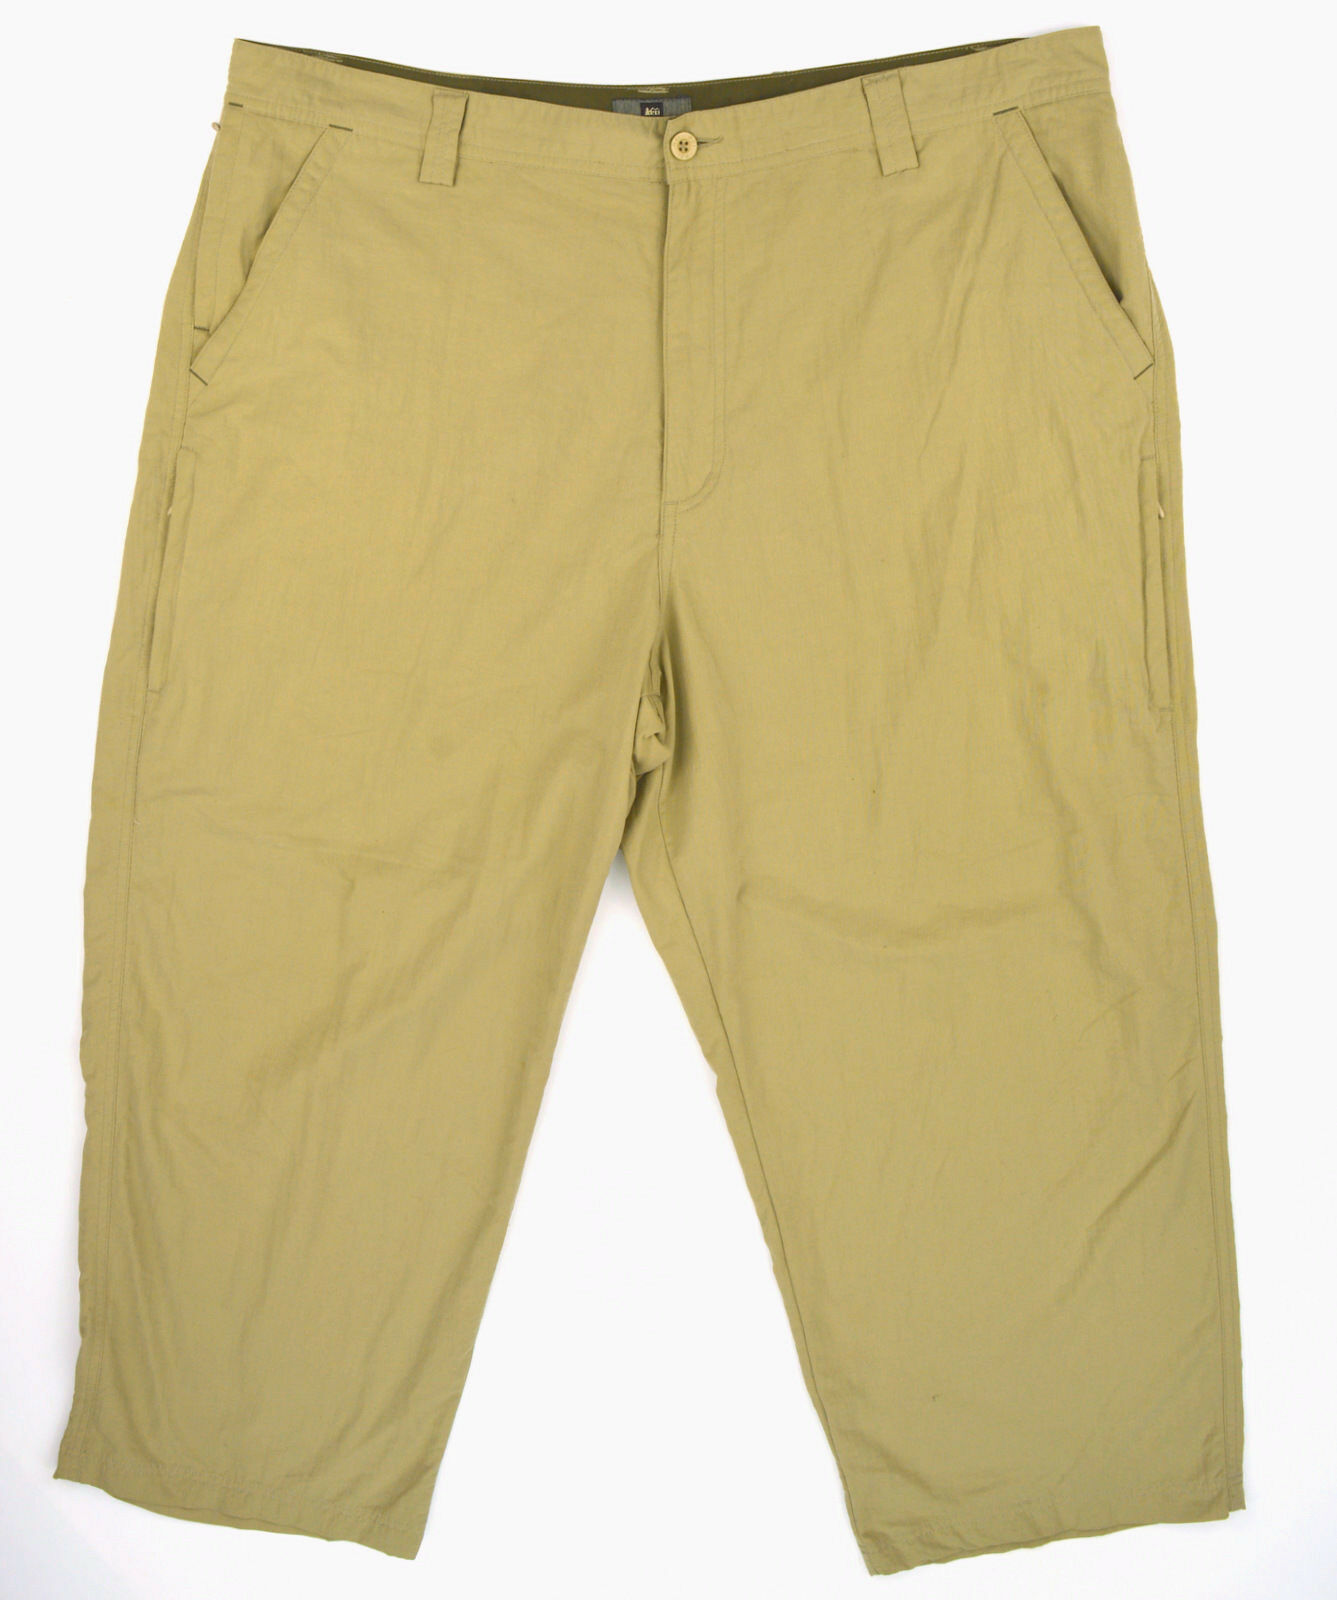 REI Mens Beige 100% Nylon UPF 40+ Camping Hiking Outdoor Pants  Sz 42x27